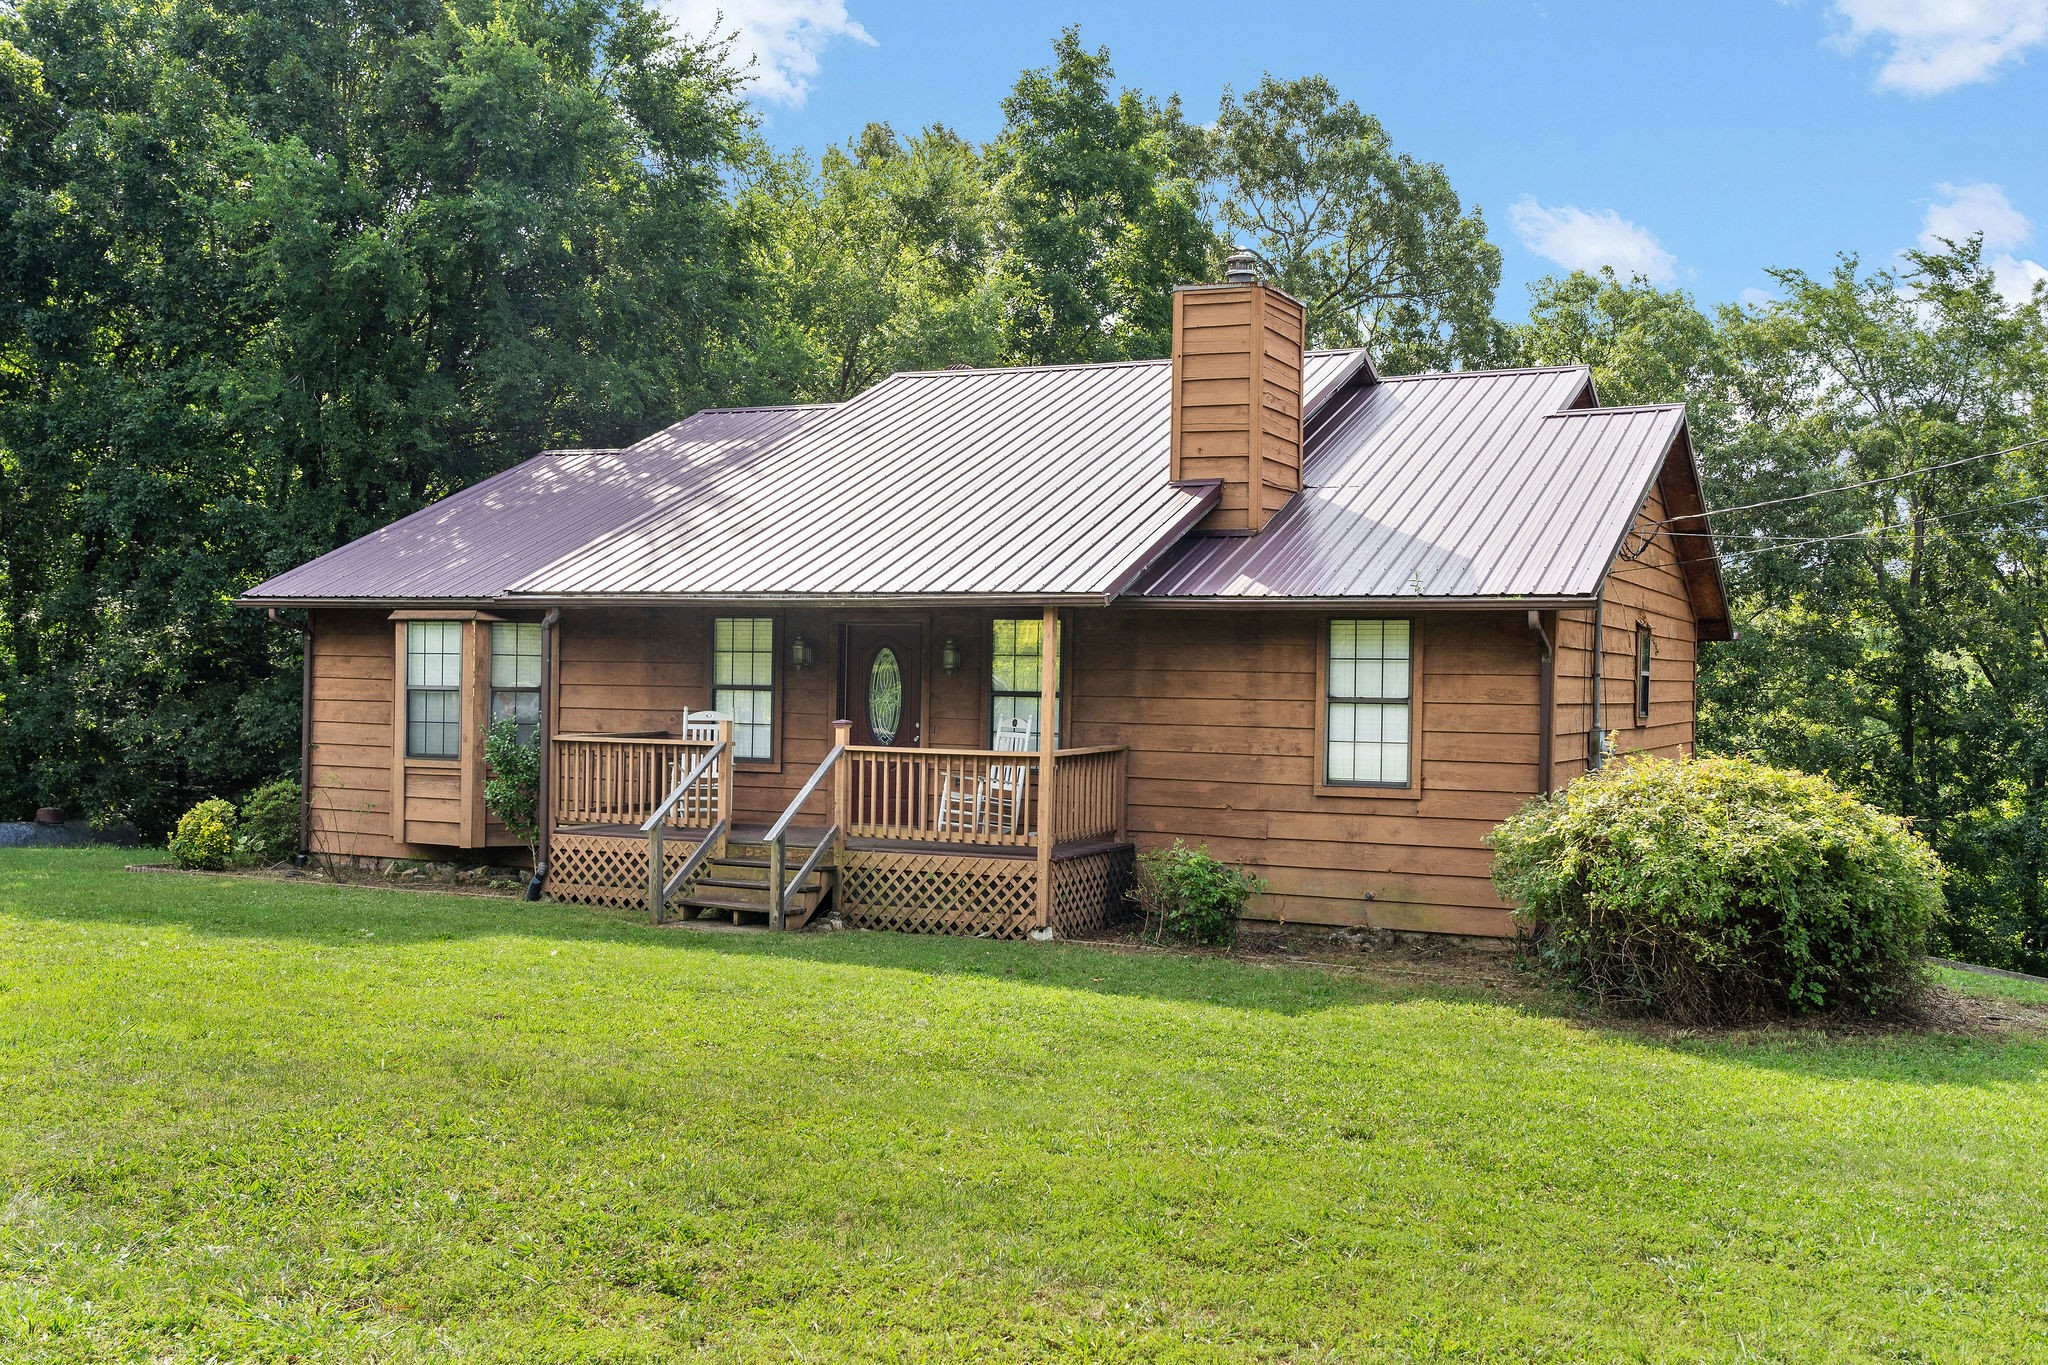 Beautiful cedar sided country home with a full unfinished basement, XL covered back deck with parking and patio underneath, stone fireplace and high ceilings in open living room, 3 Bed/2Bath, almost an acre lot to watch deer and turkeys play, short drive to Clarksville/FTC or LBL